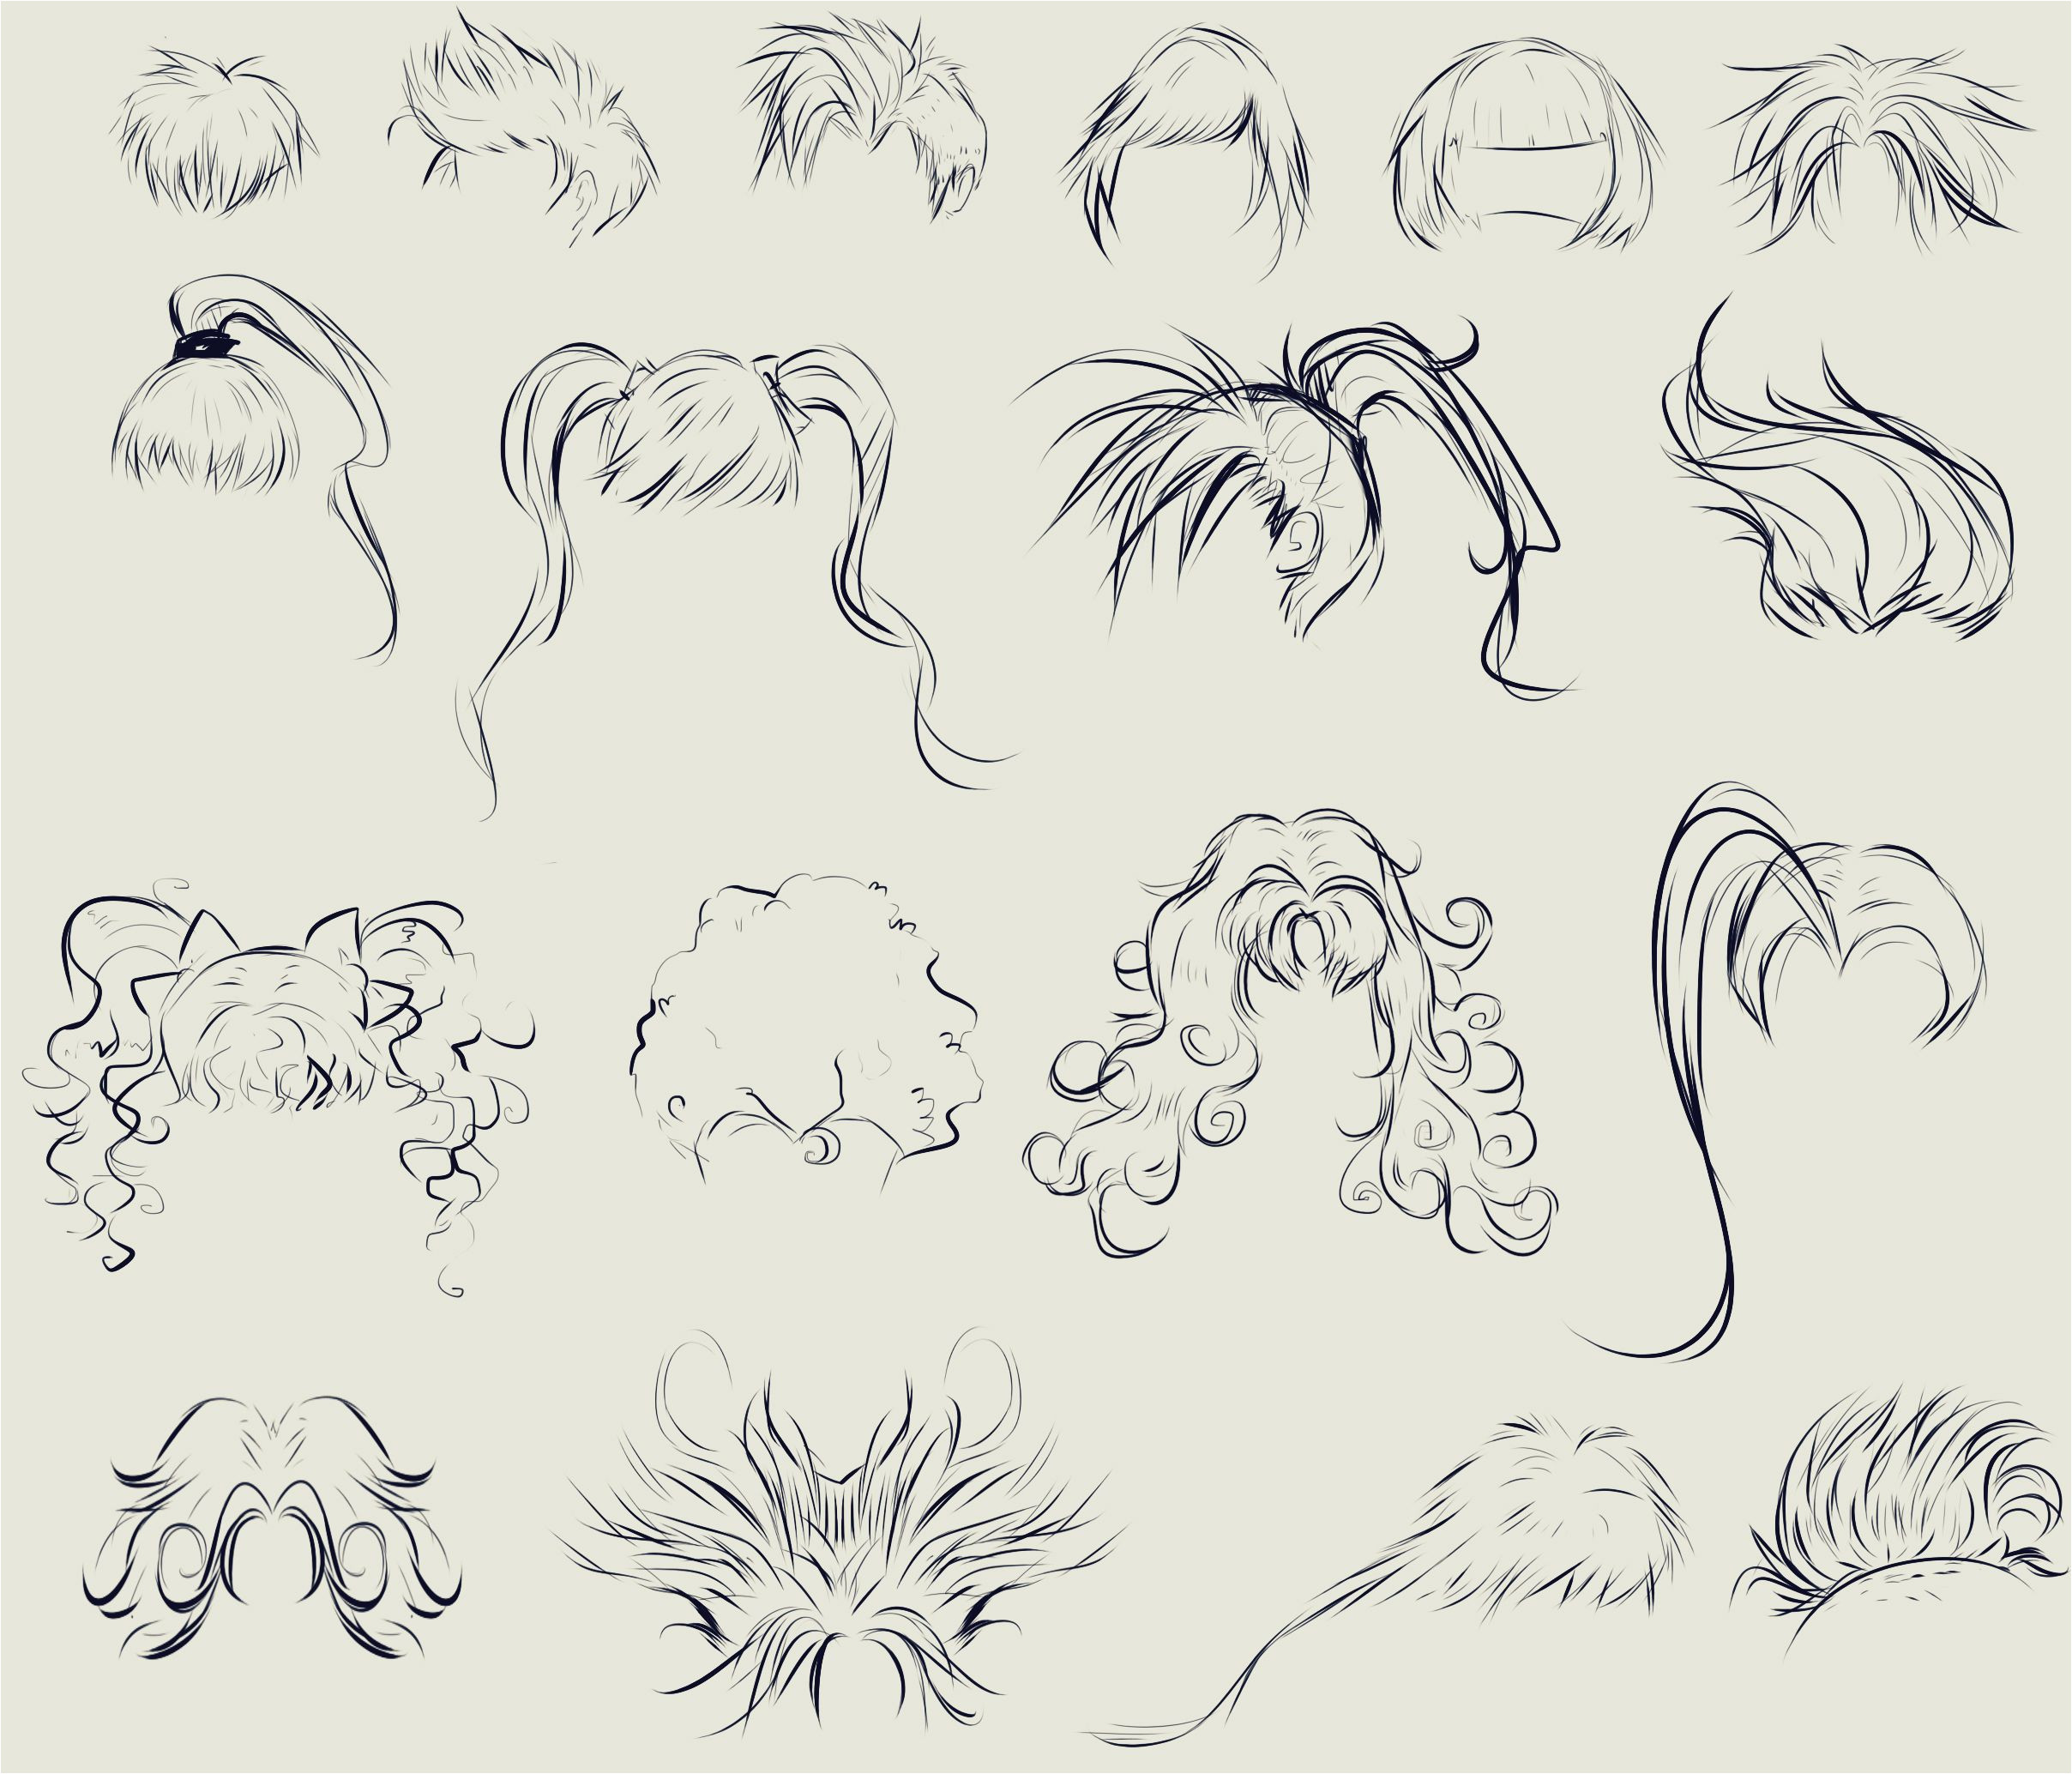 This anime hair reference sheet by ryky is all you need to those flowy locks looking just right drawing • reference • anime • DeviantArt